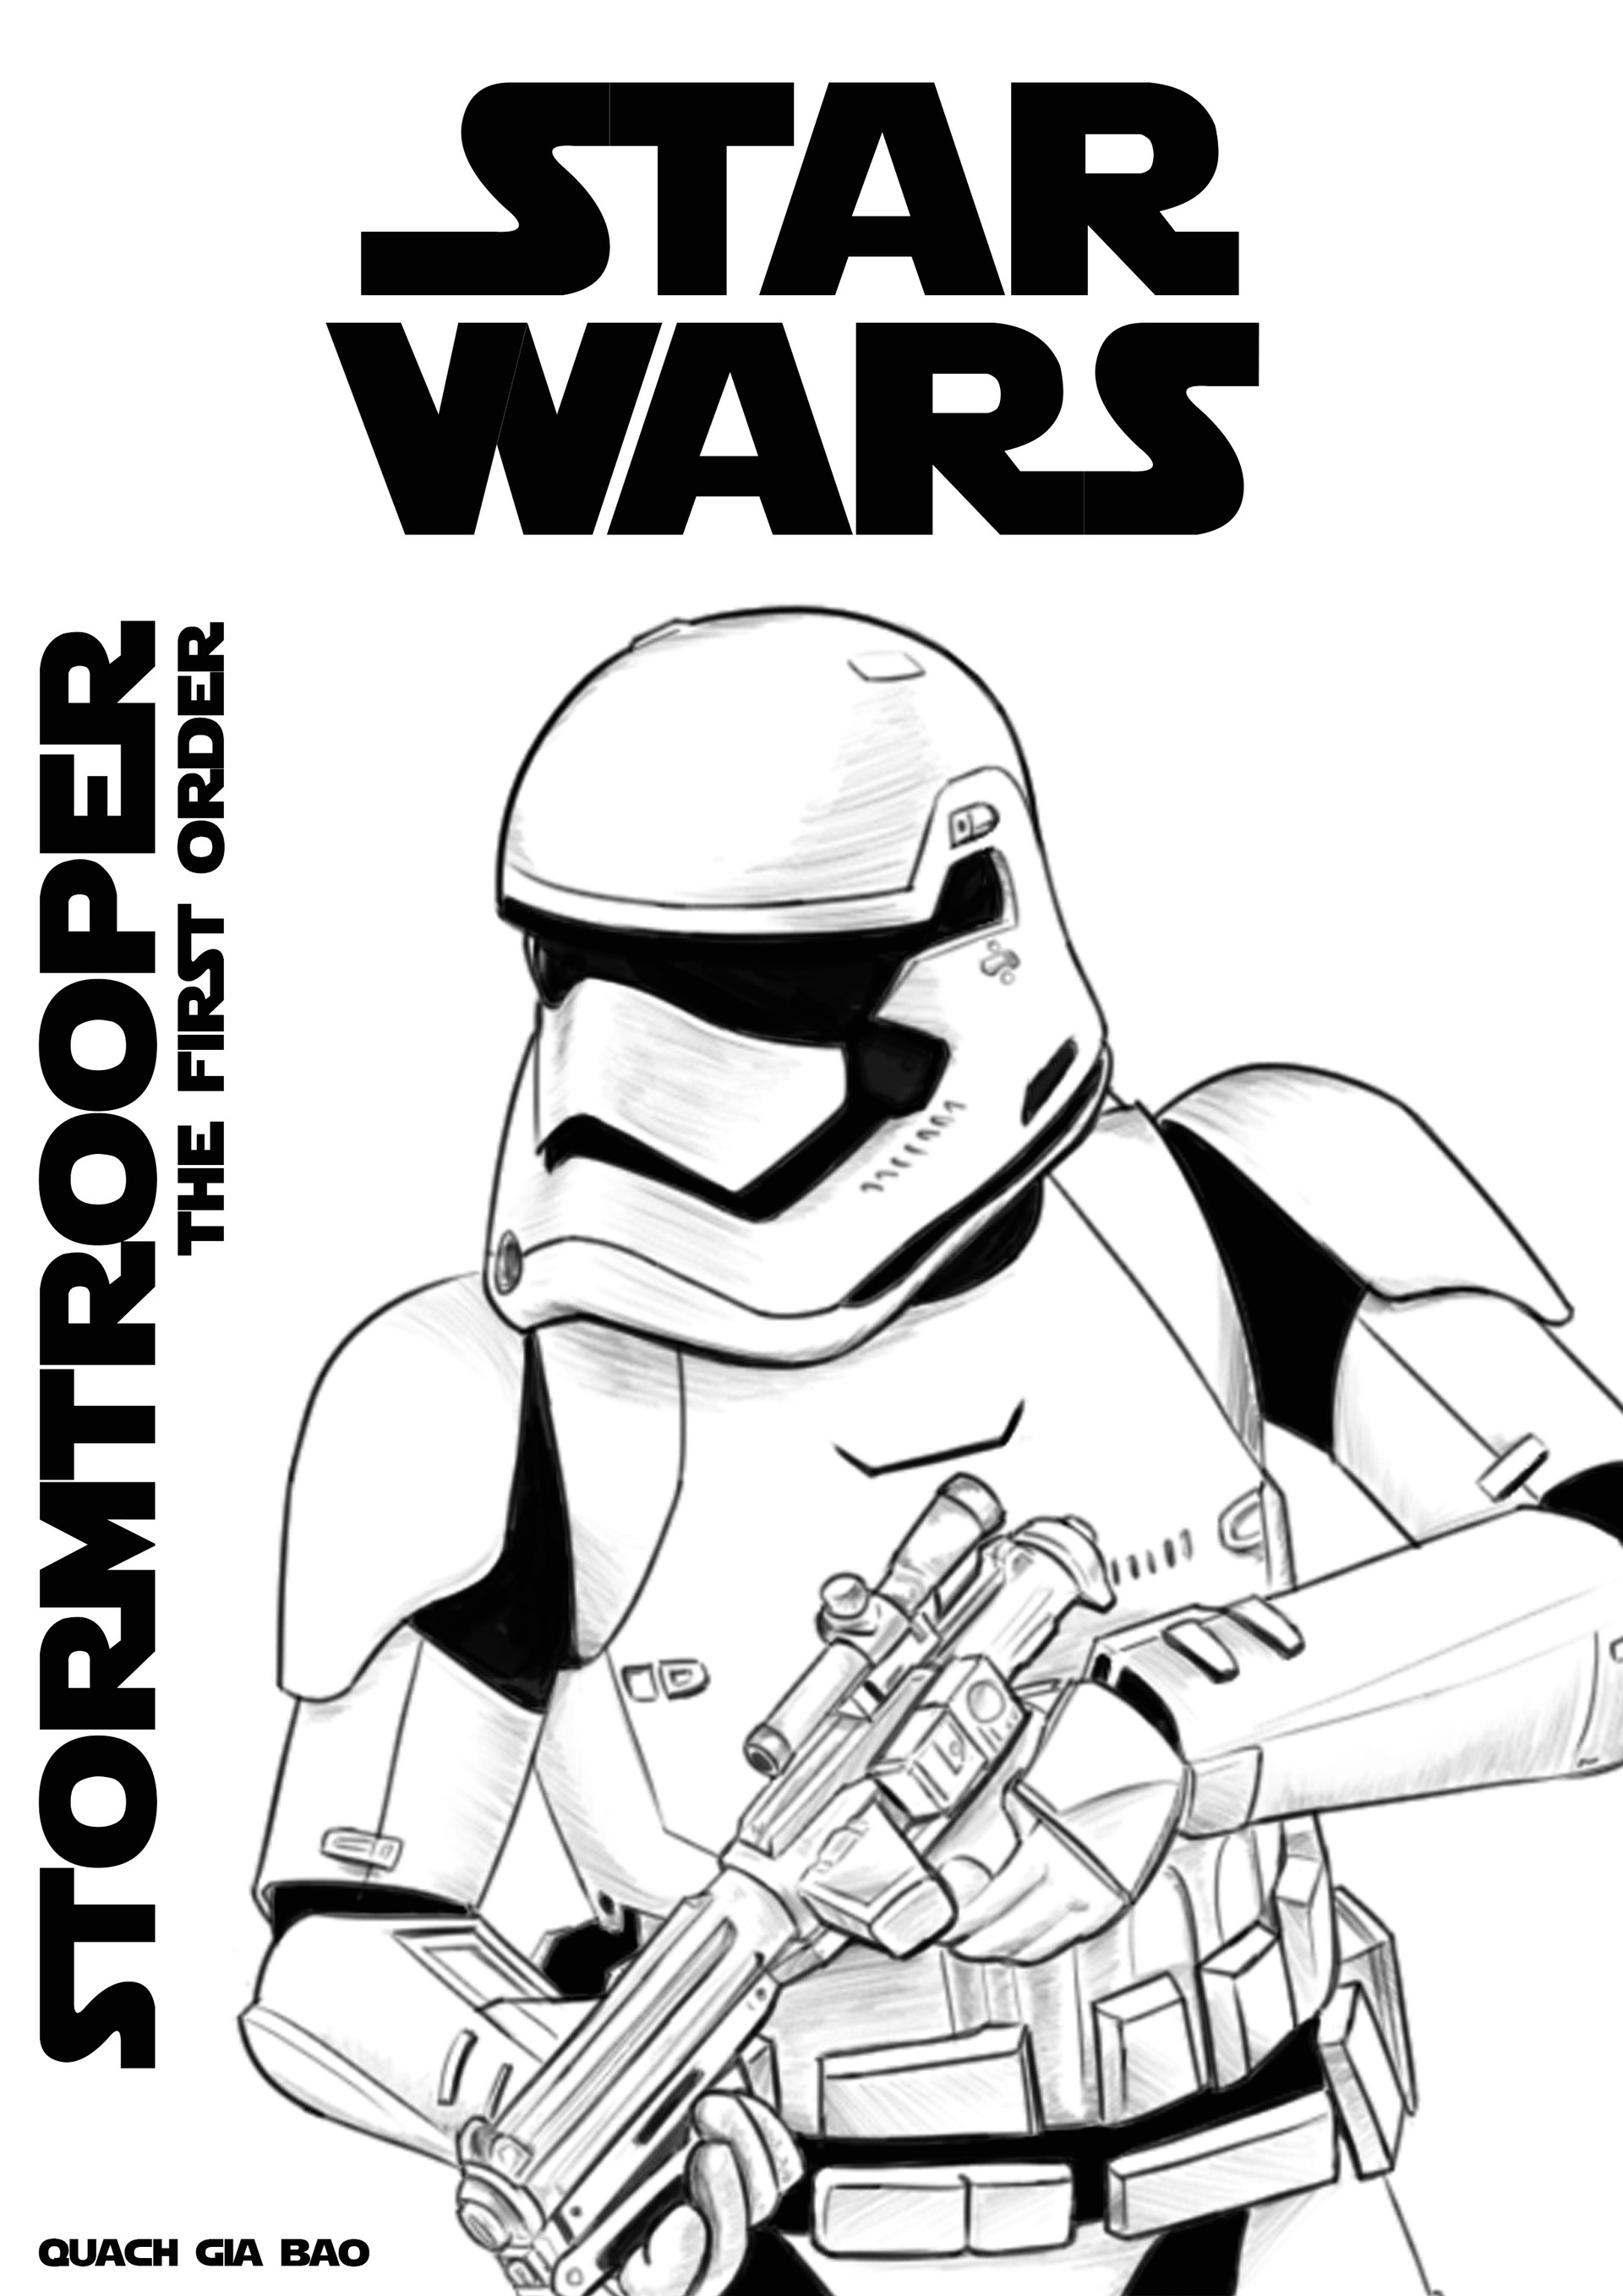 Stormtrooper Coloring Page - Artstation Sketch Firstorder Stormtrooper Guo Jiabao